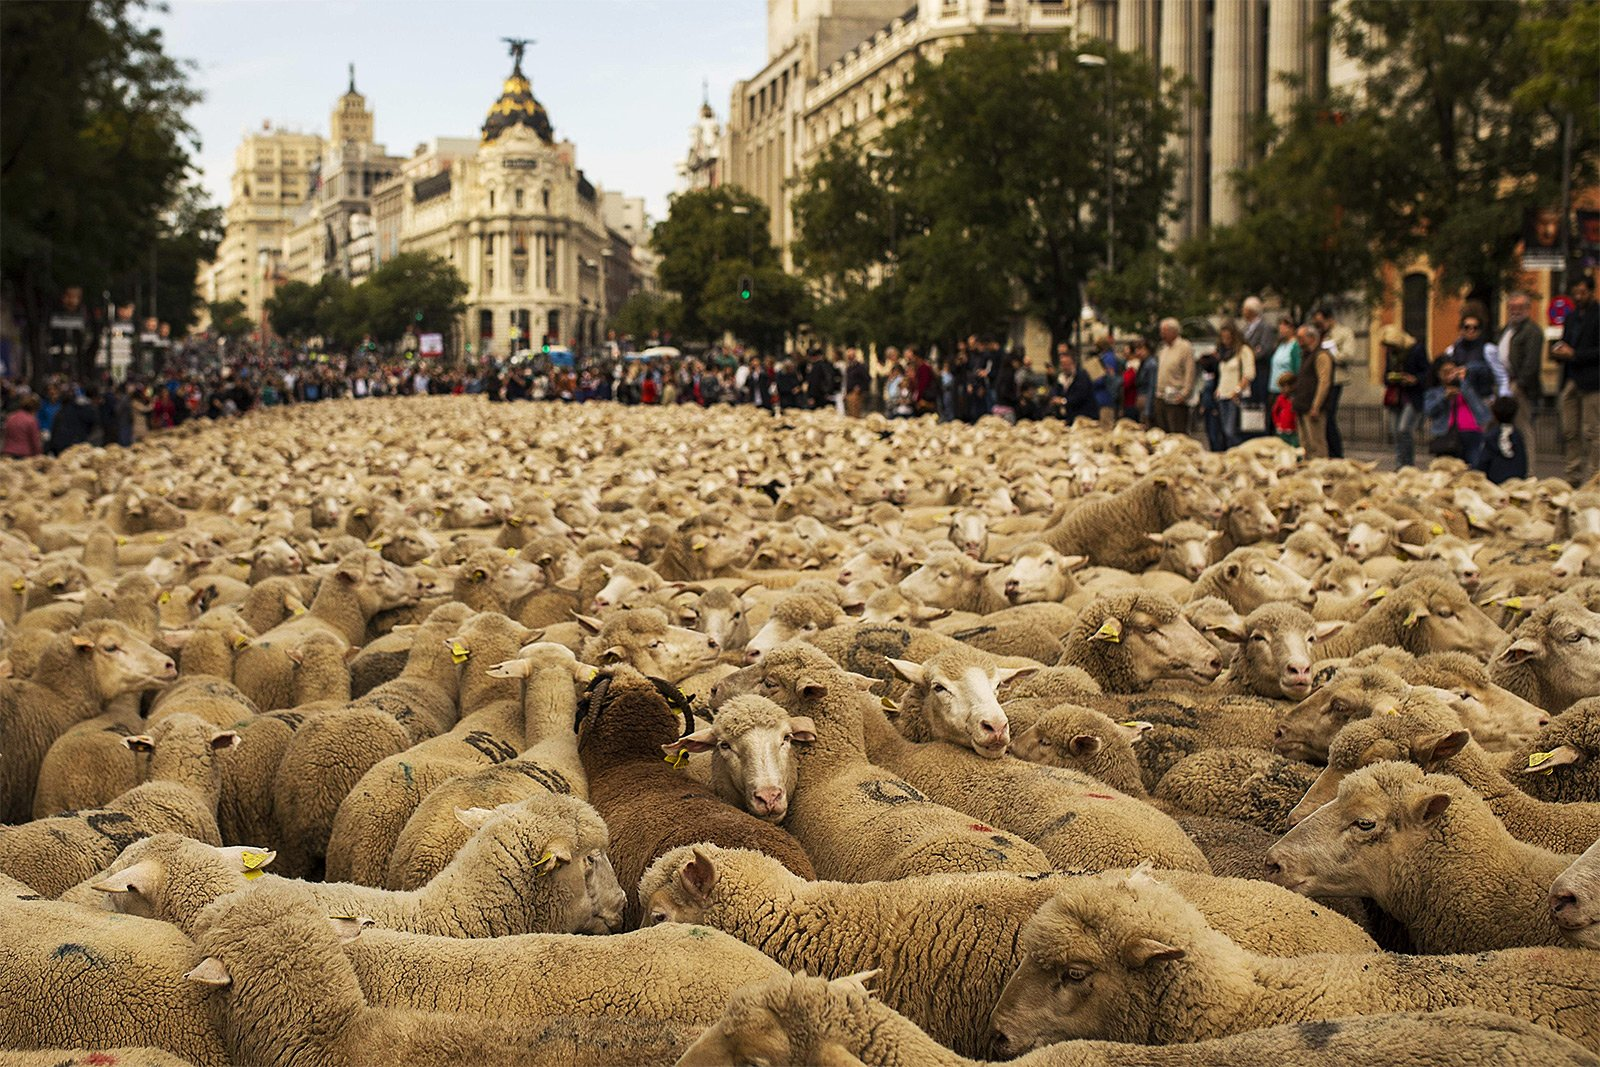 How to see the procession of sheep through the city in Madrid